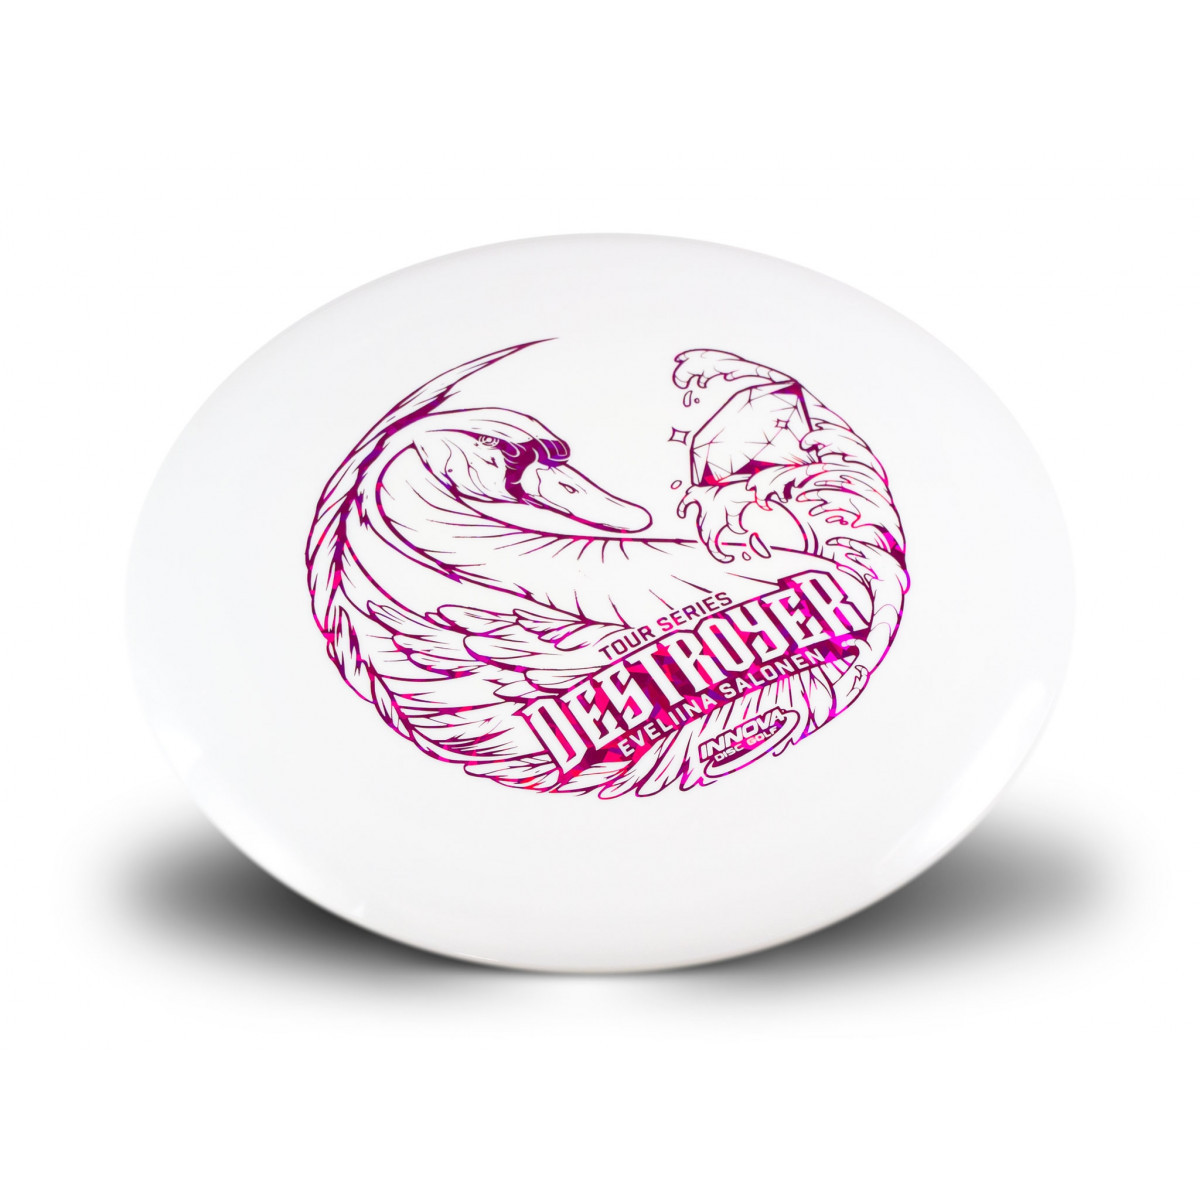 Innova Star Destroyer Eveliina Salonen 2020 Tour Series